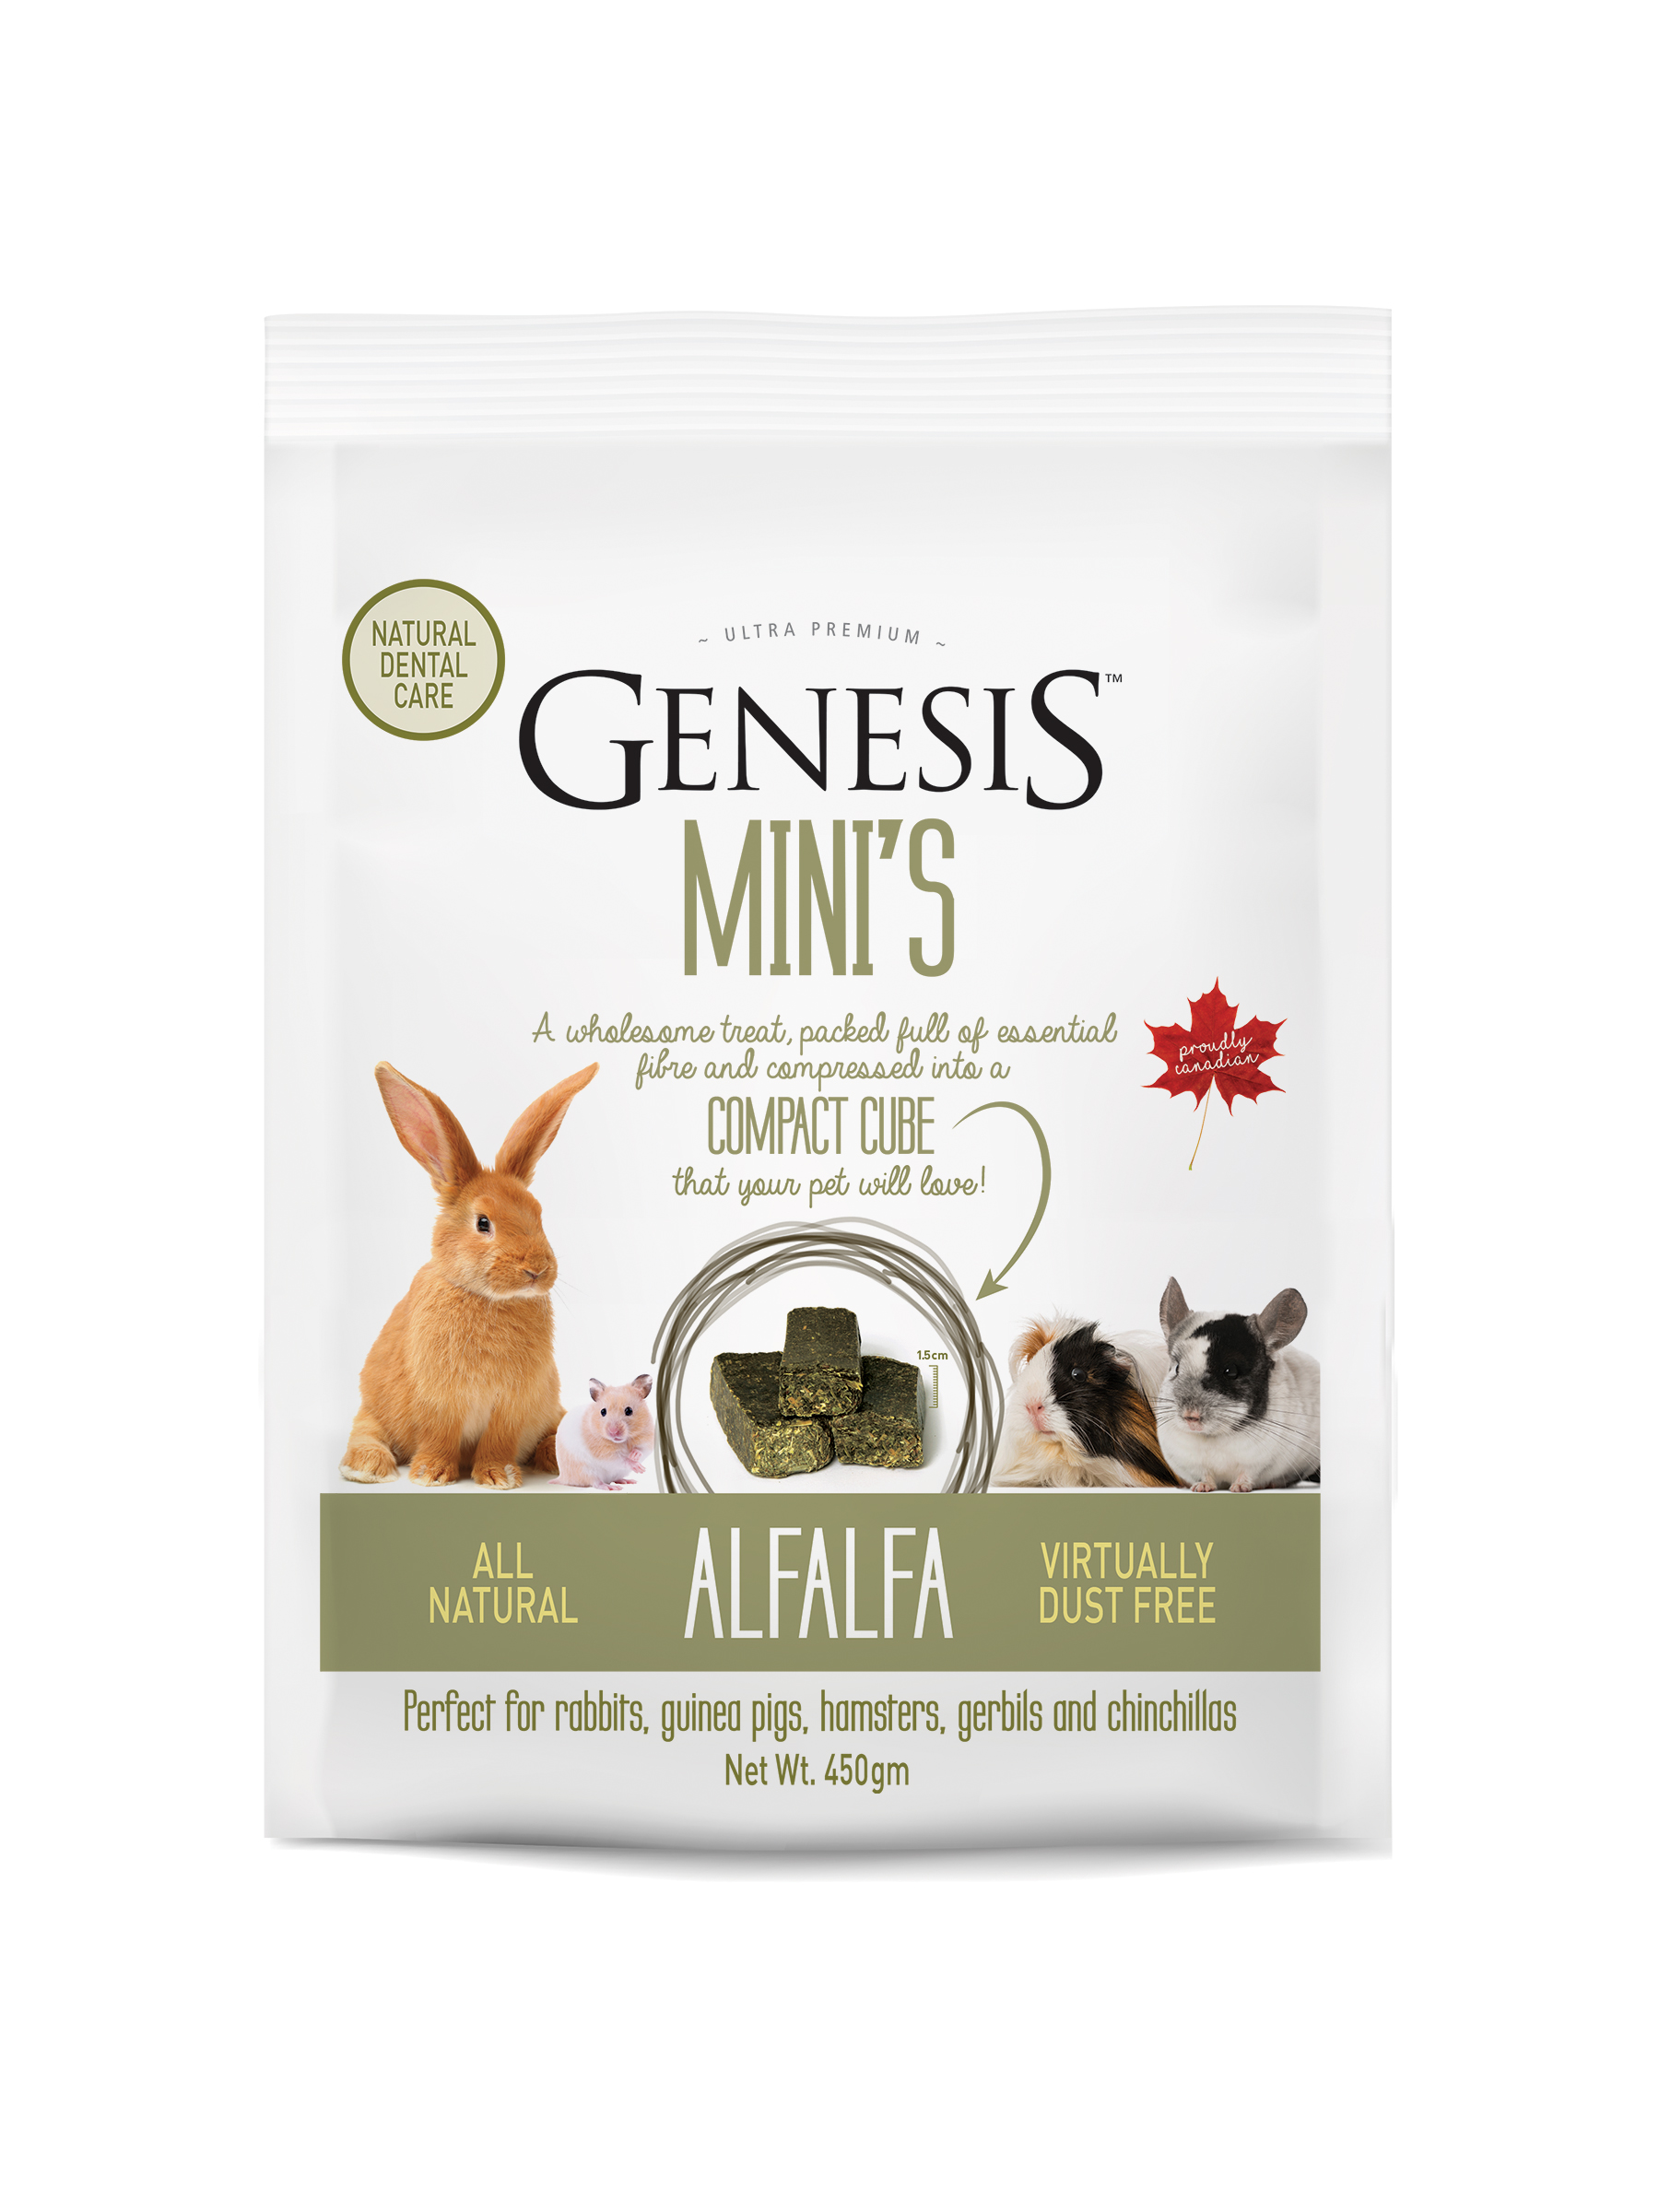 Genesis Mini's - Alfalfa - the perfect all natural, wholesome treat, packed full of essential fibre and compressed into a compact cube that your pet will love.